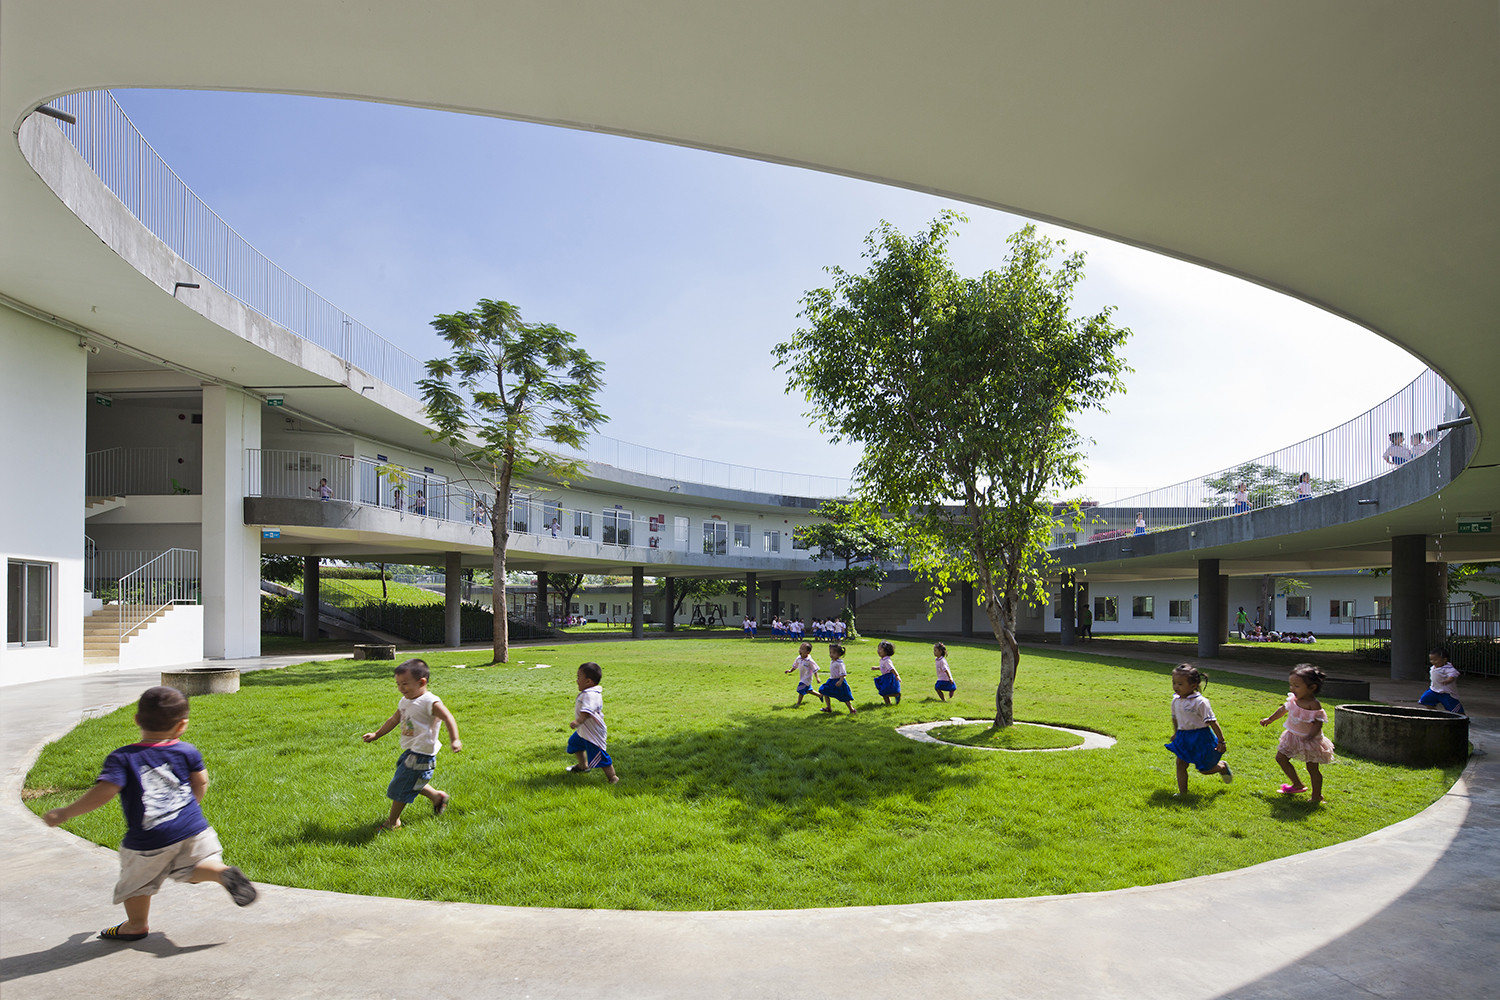 Farming kindergarten vo trong nghia architects archdaily for Casa jardin infantil